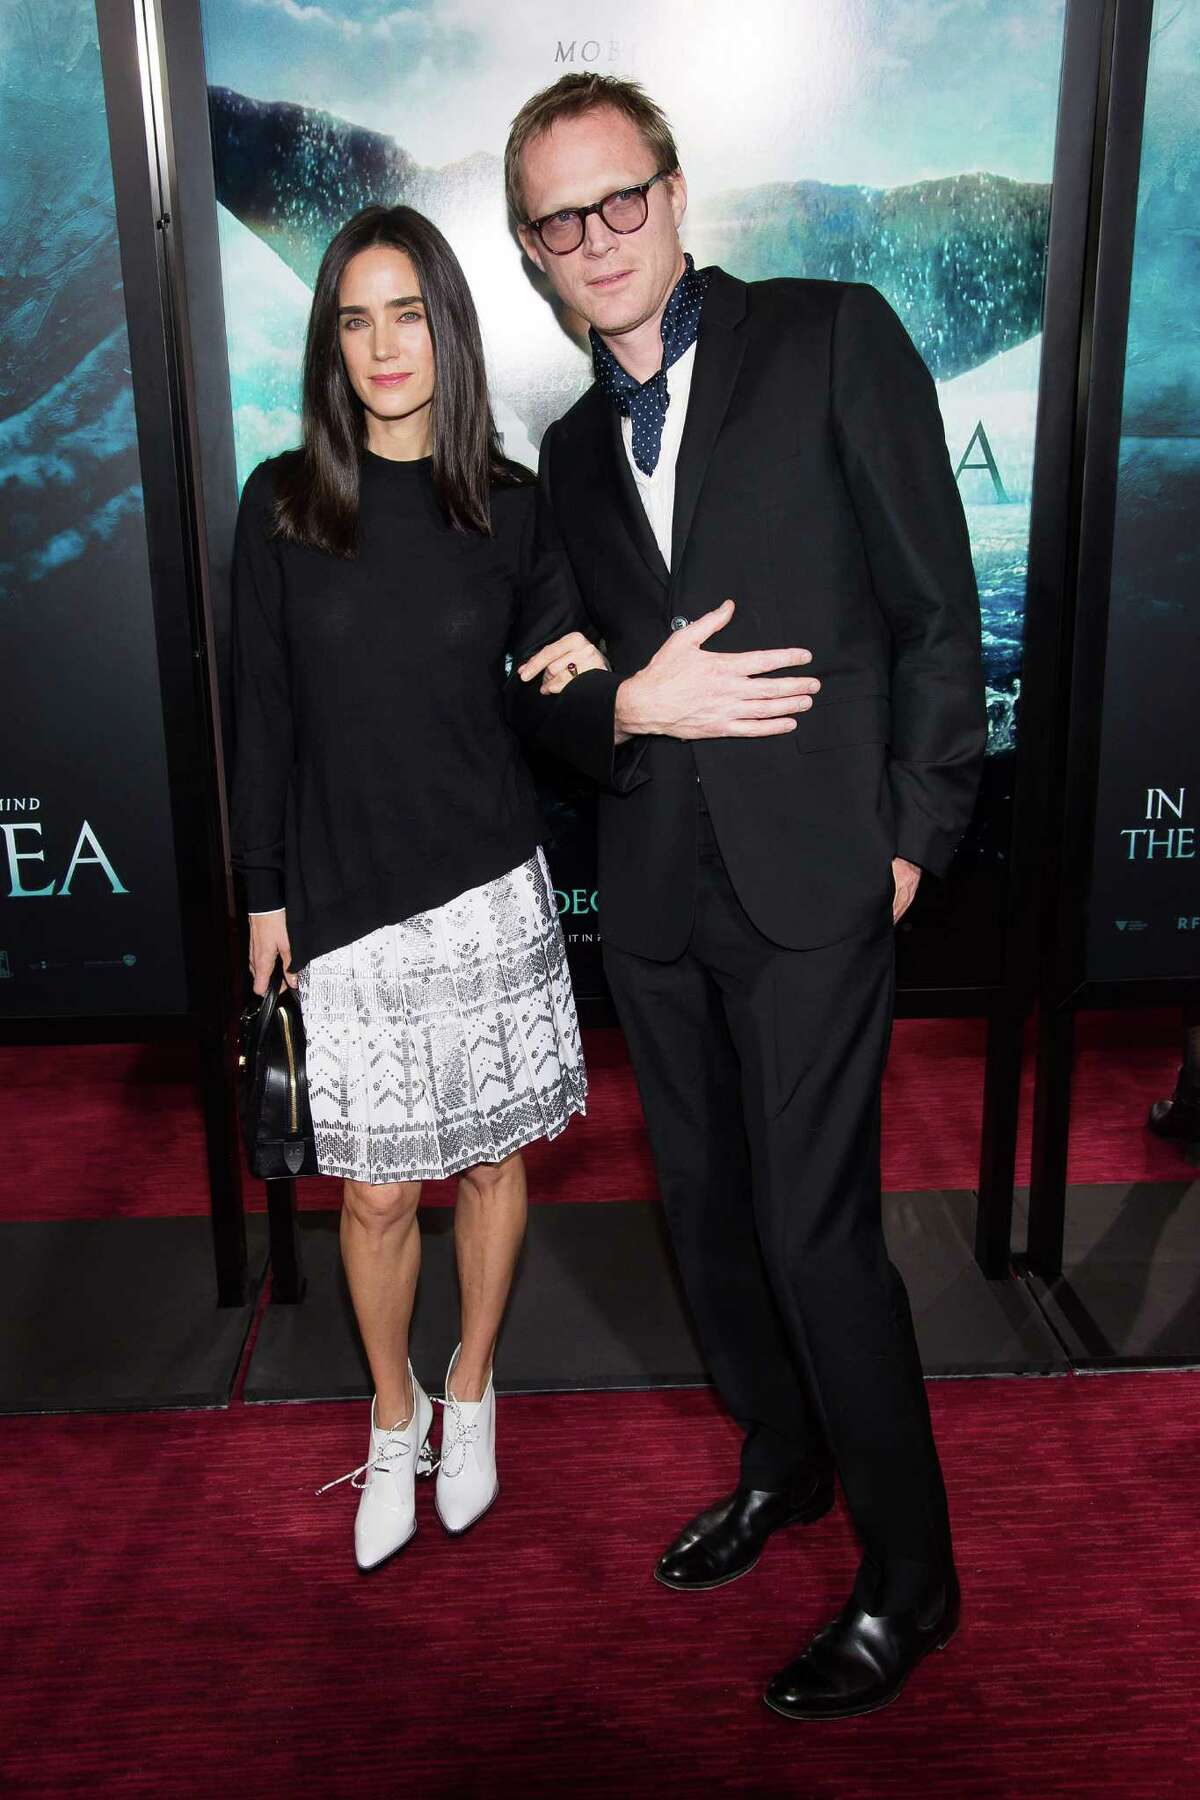 Jennifer Connelly and Paul Bettany attend the premiere of